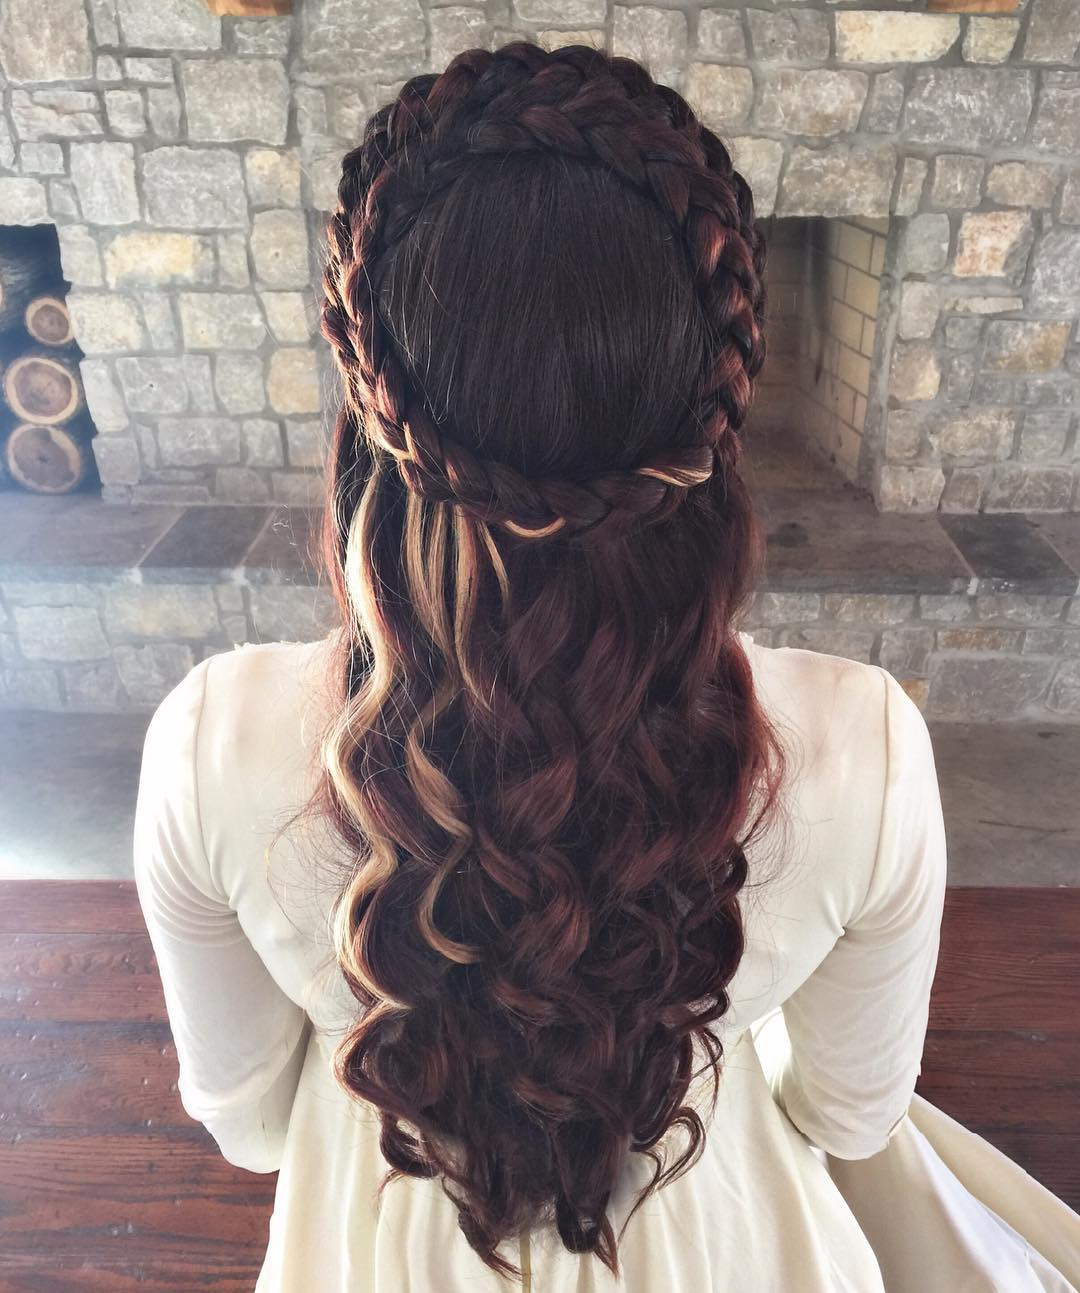 Celtic Hairstyles Female  24 Beautiful Me val Hairstyles